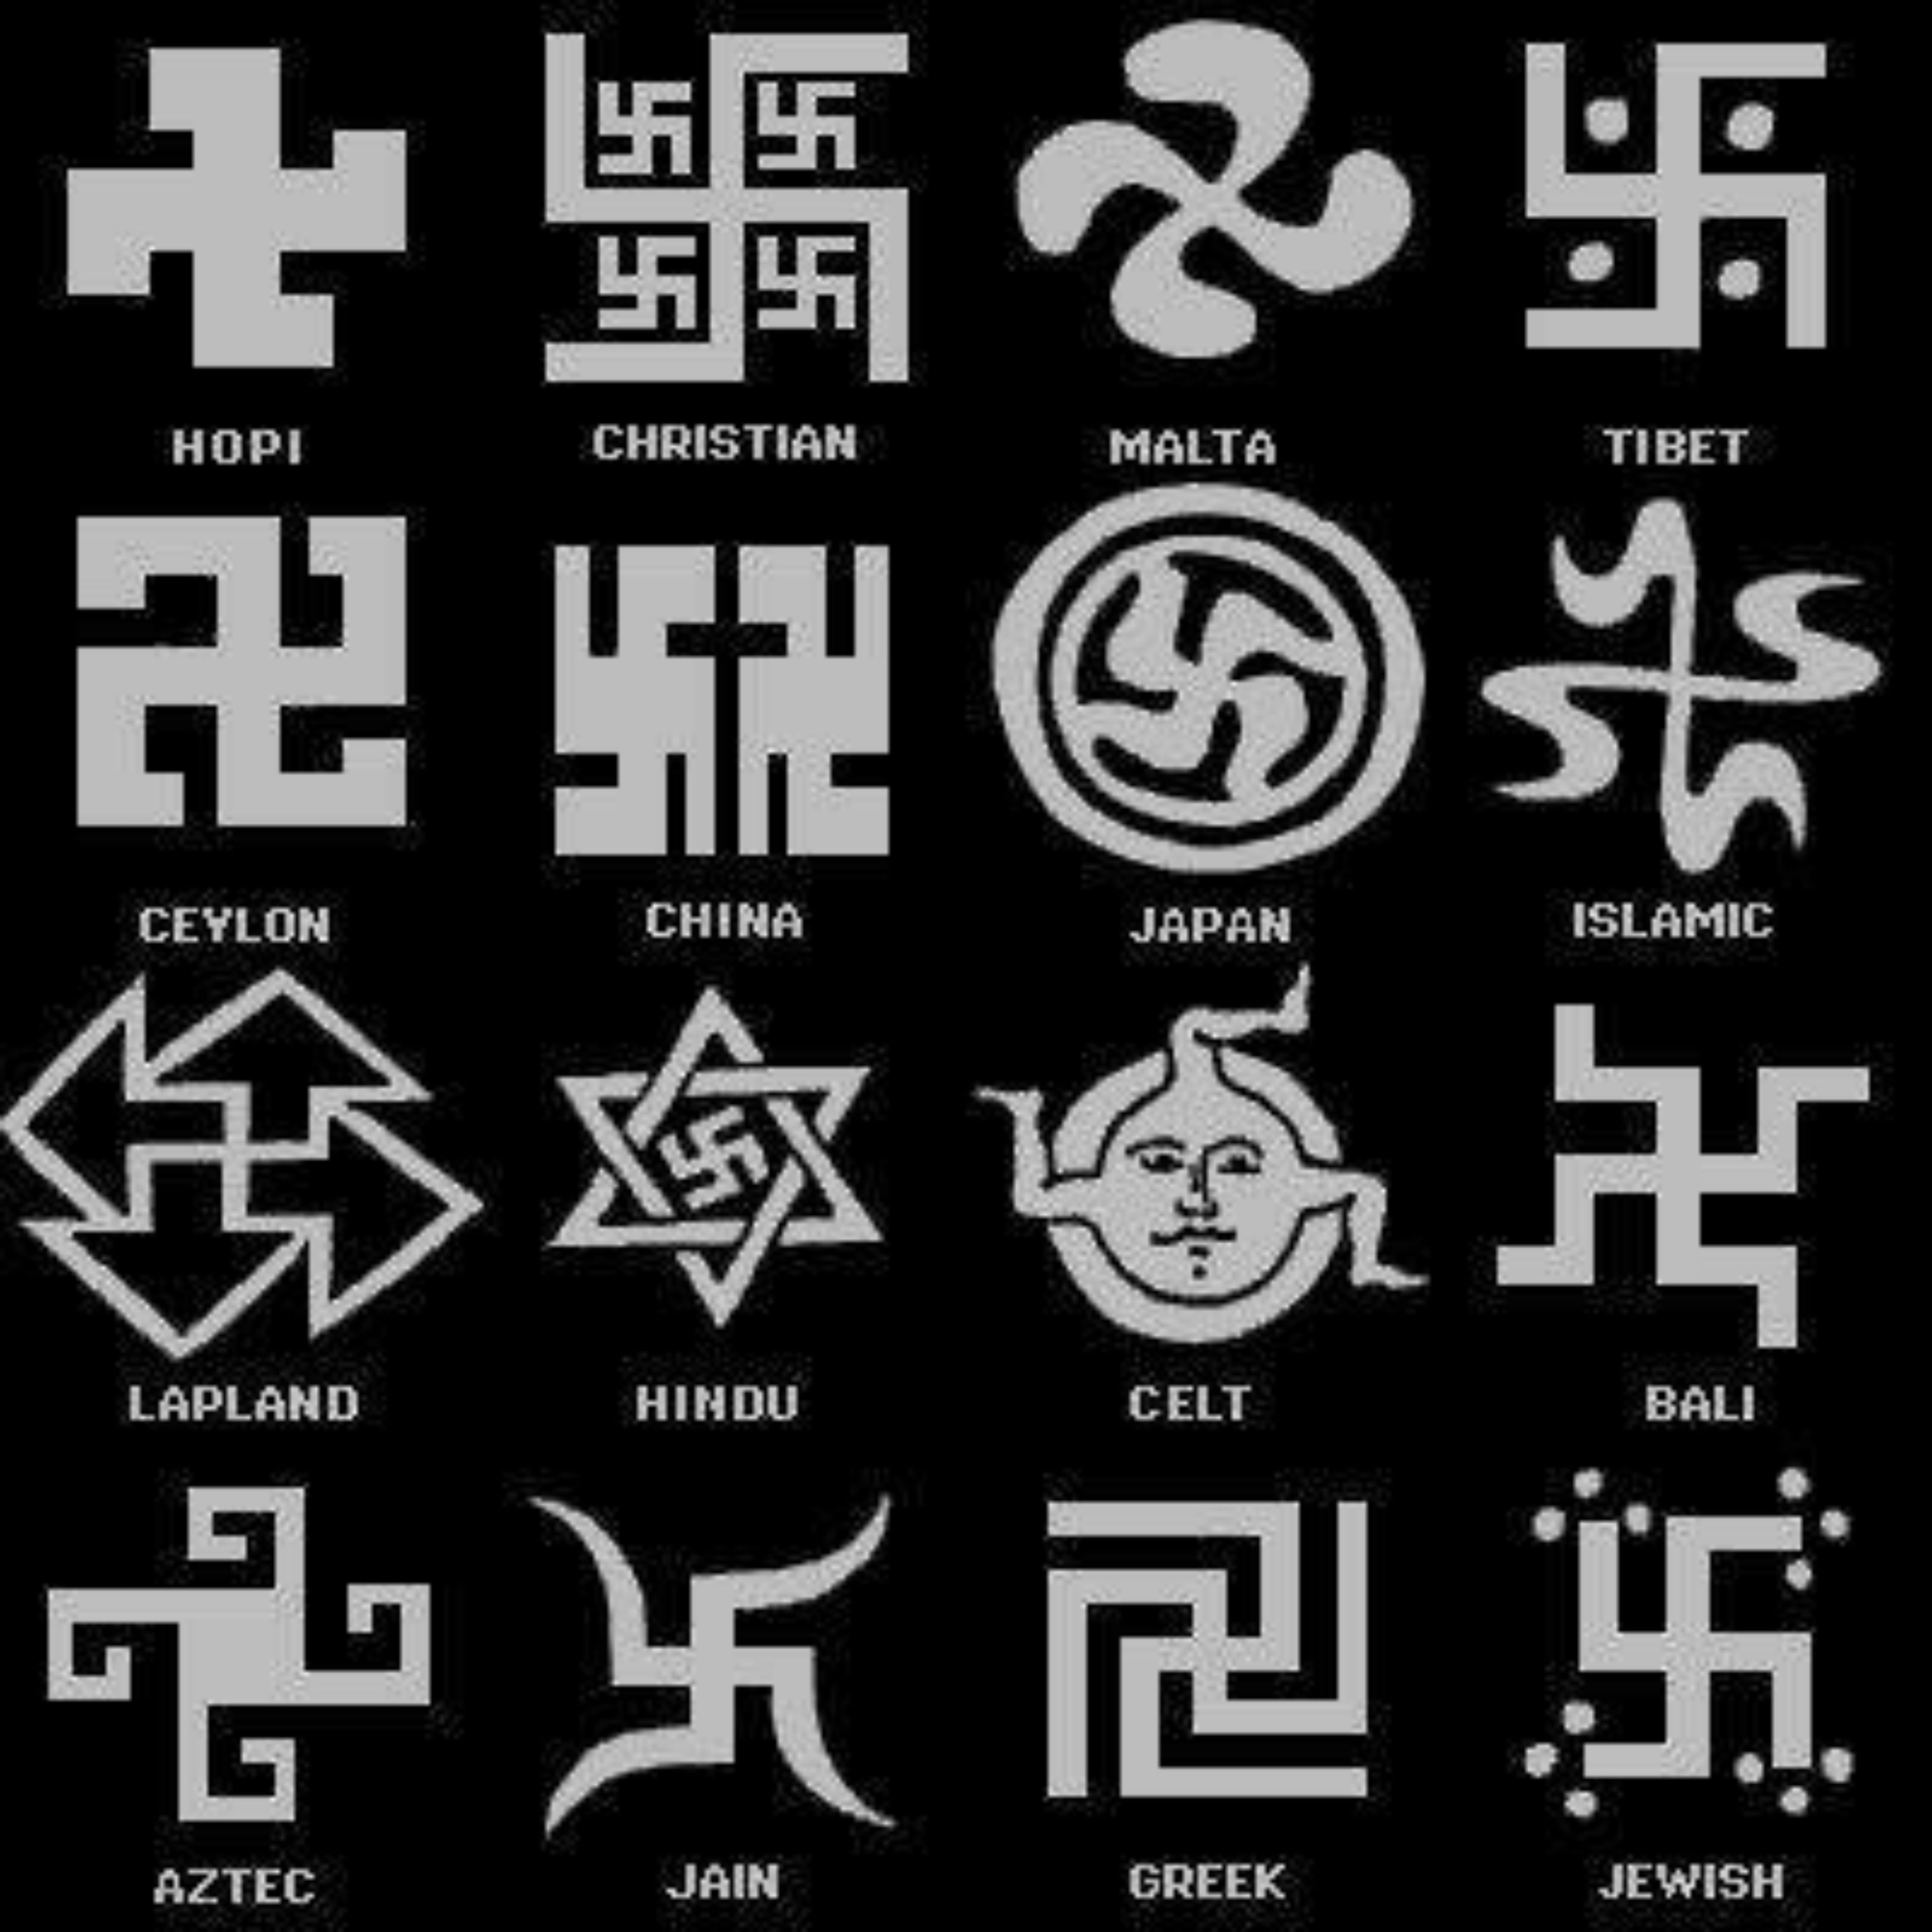 Pin by desire jaeqx on sacred geometry pinterest explore ancient symbols ancient scripts and more biocorpaavc Gallery